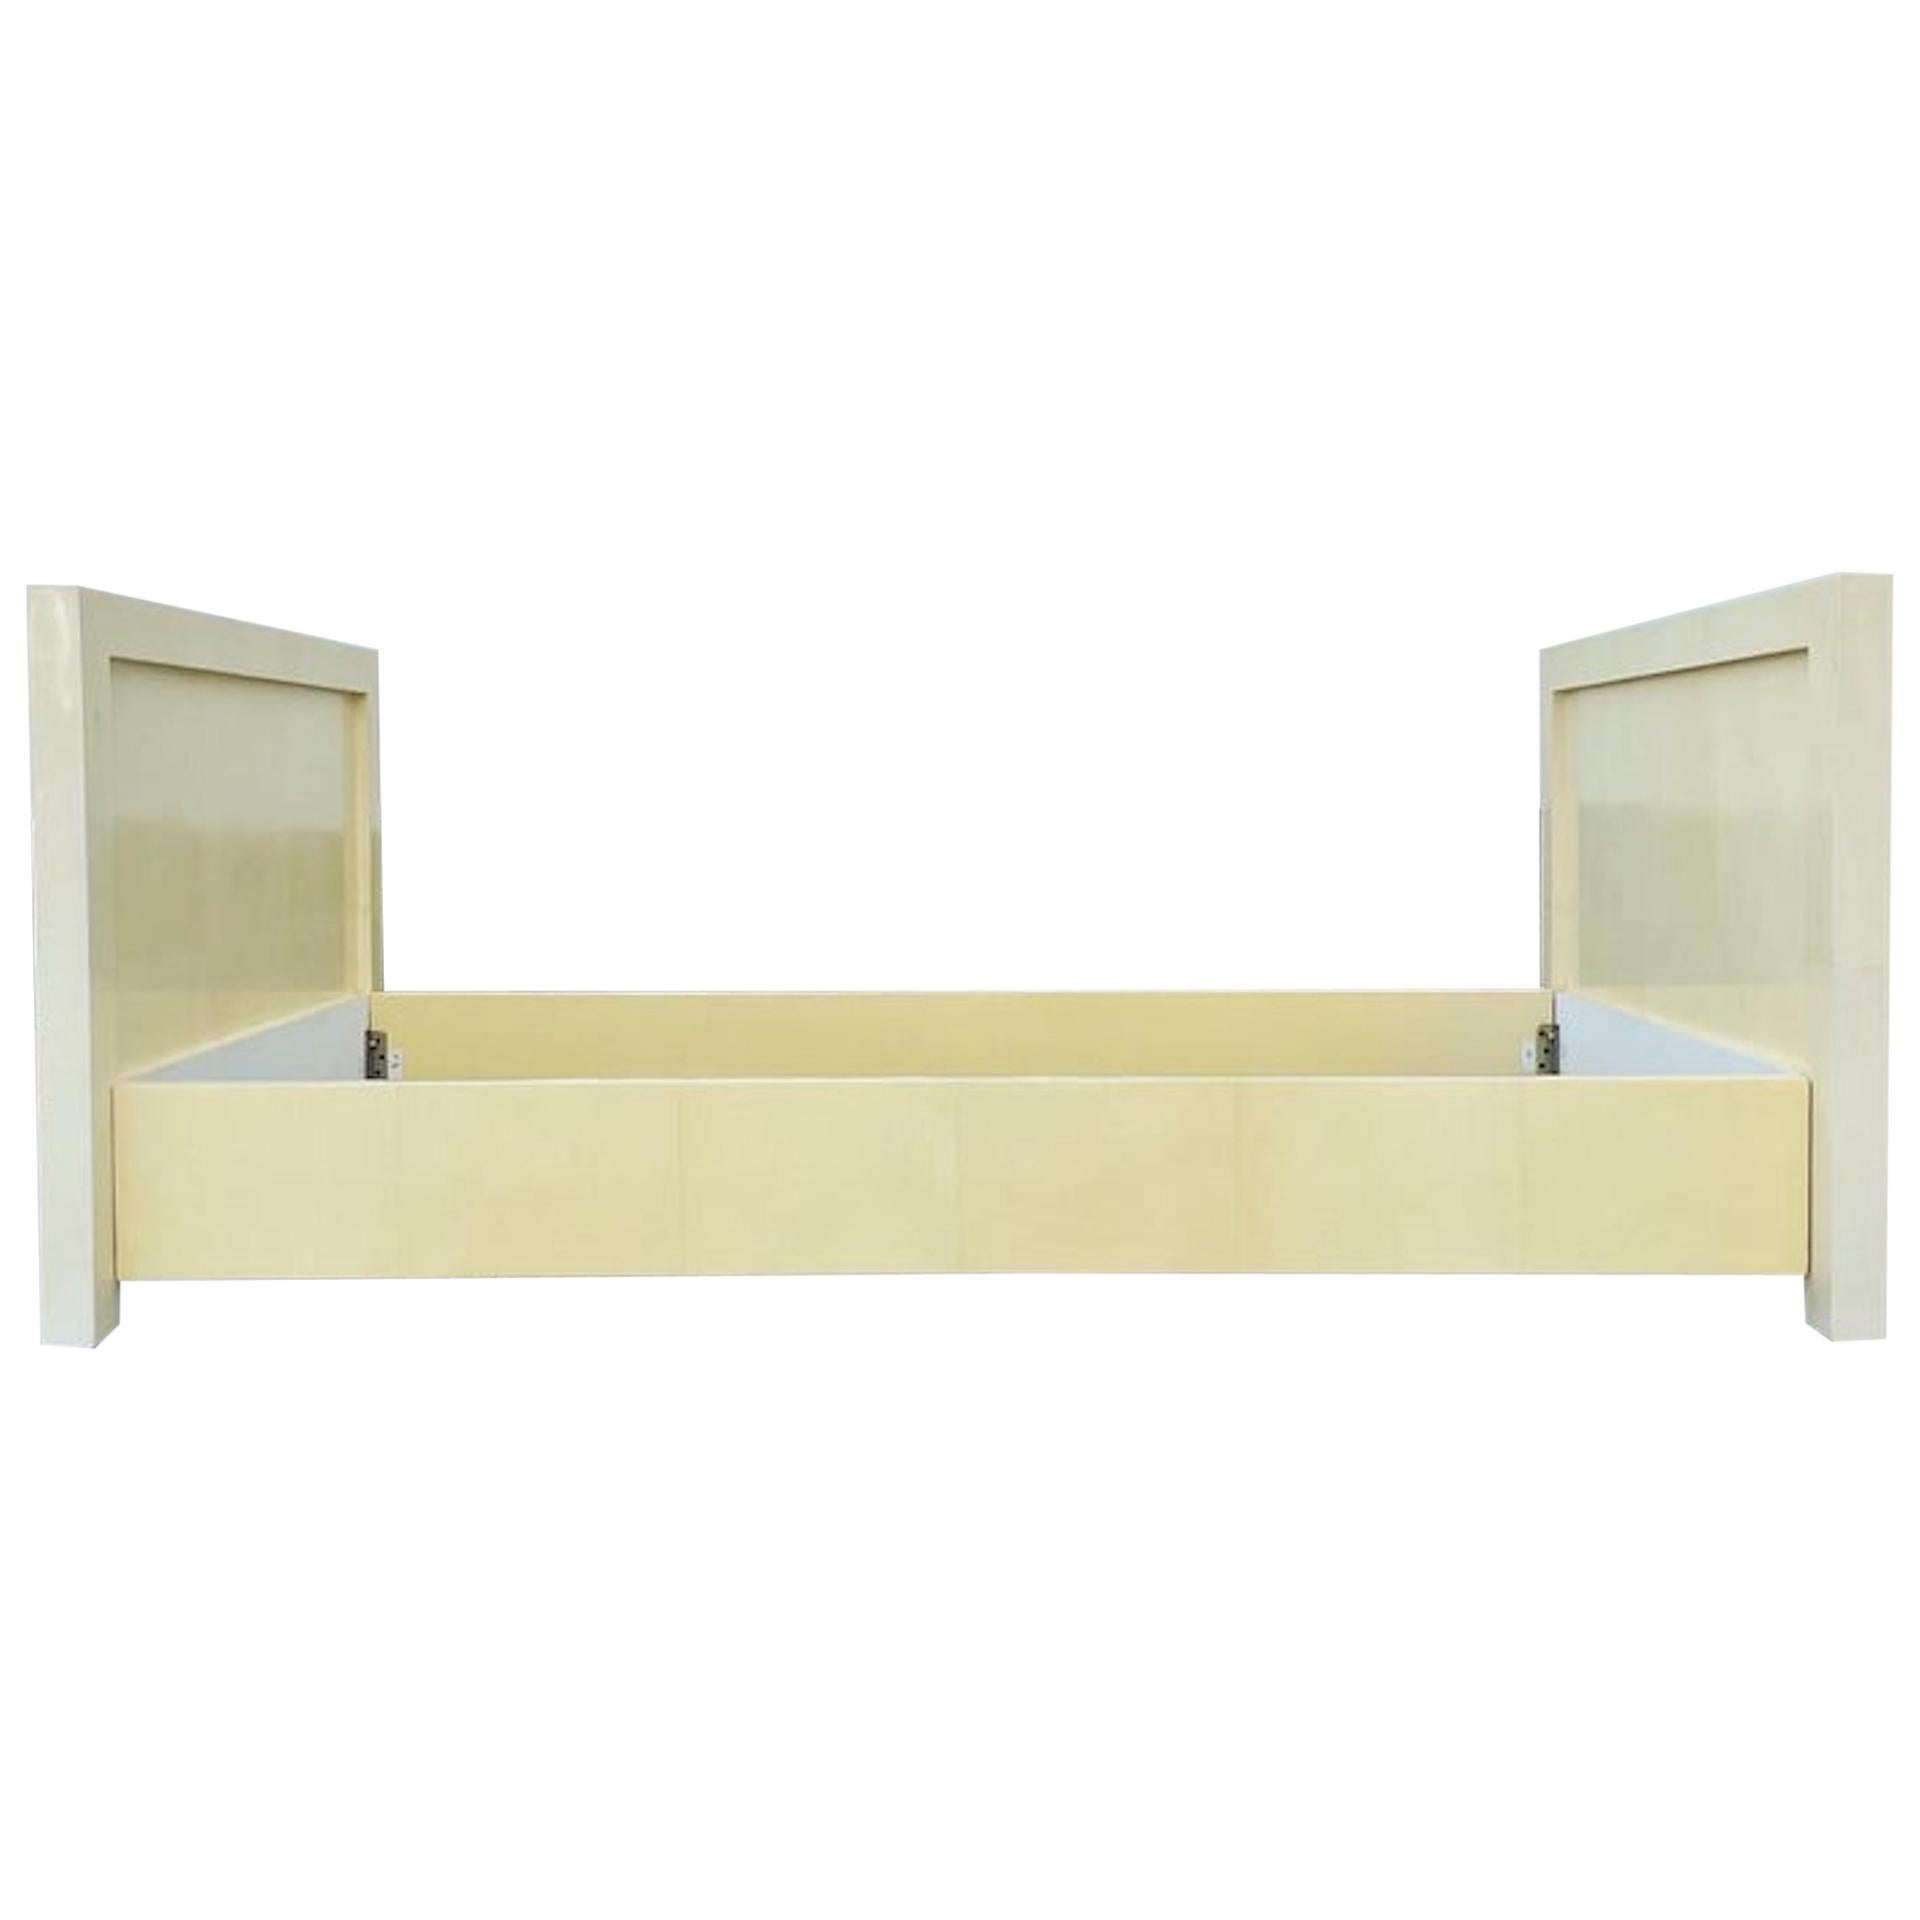 Parchment Daybed 'Frame' in the Manner of Jean-Michel Frank